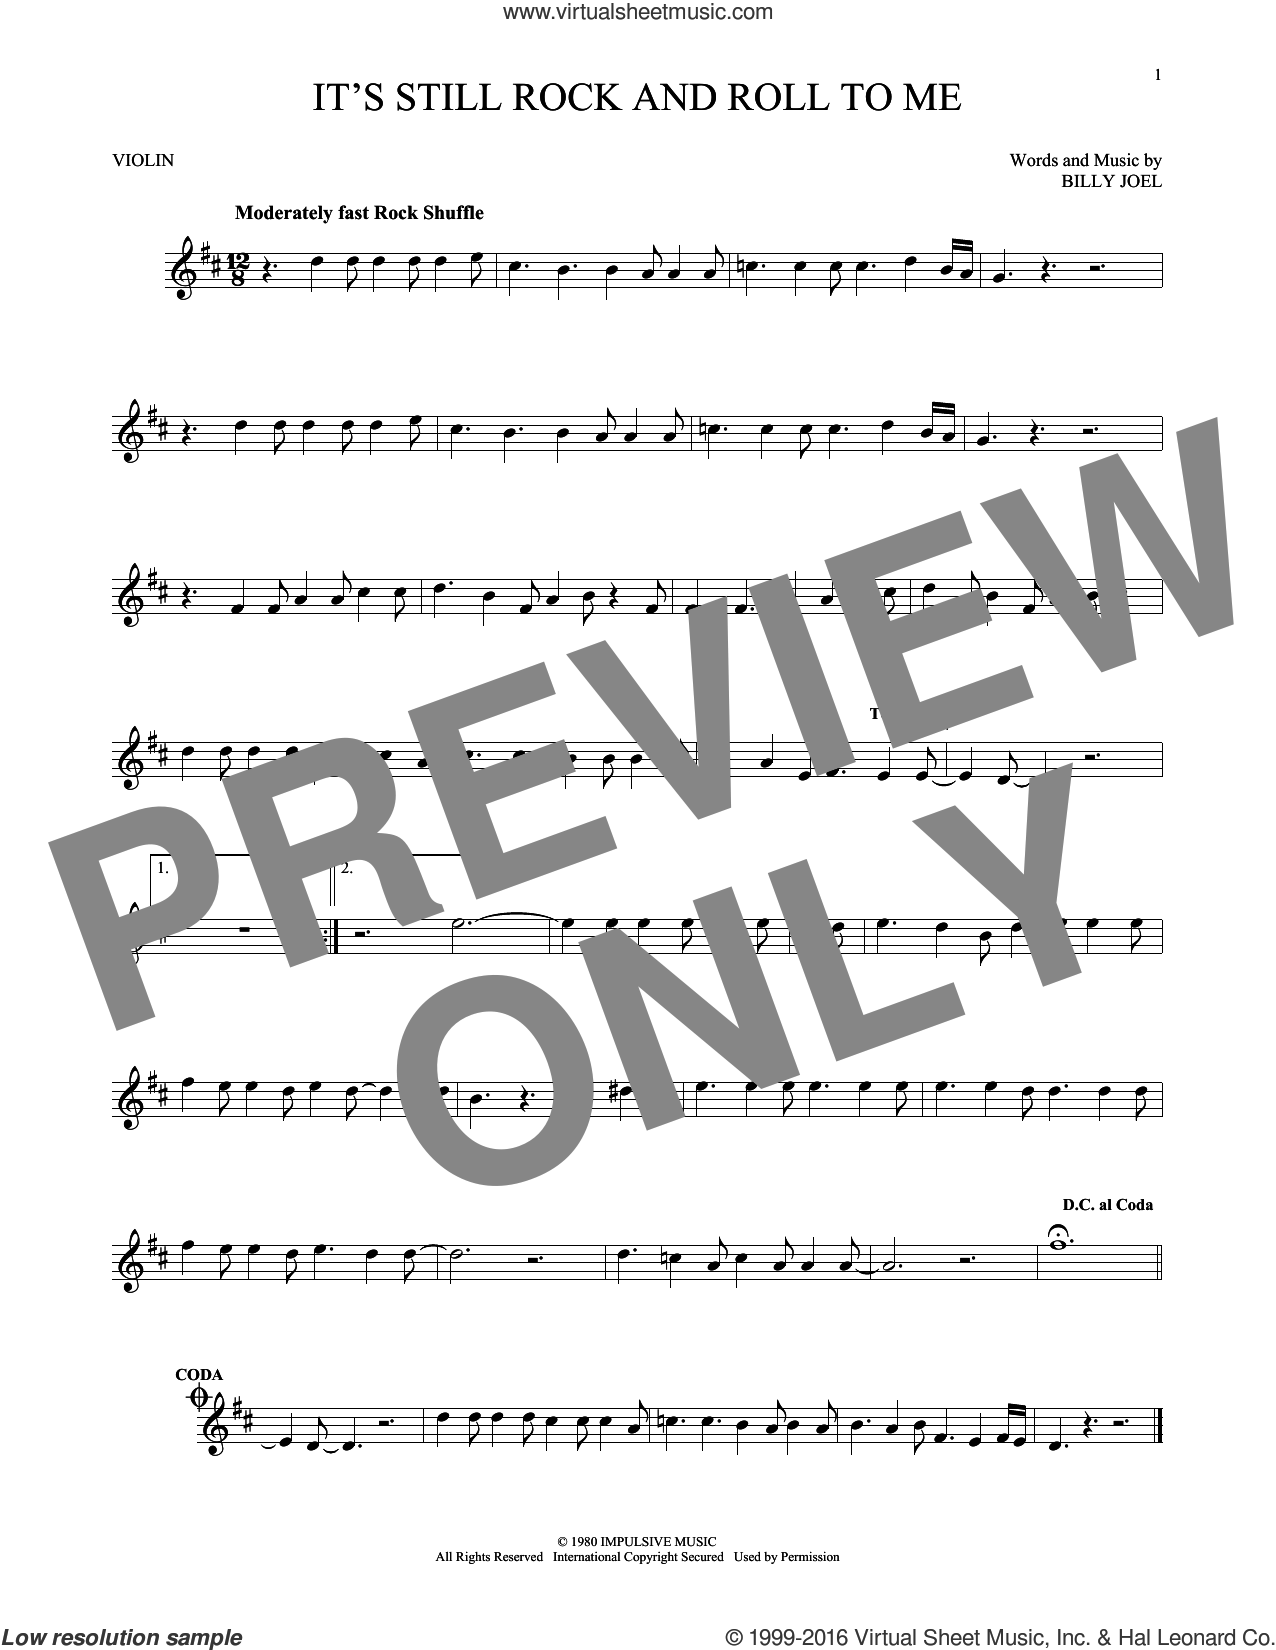 It's Still Rock And Roll To Me sheet music for violin solo by Billy Joel, intermediate skill level